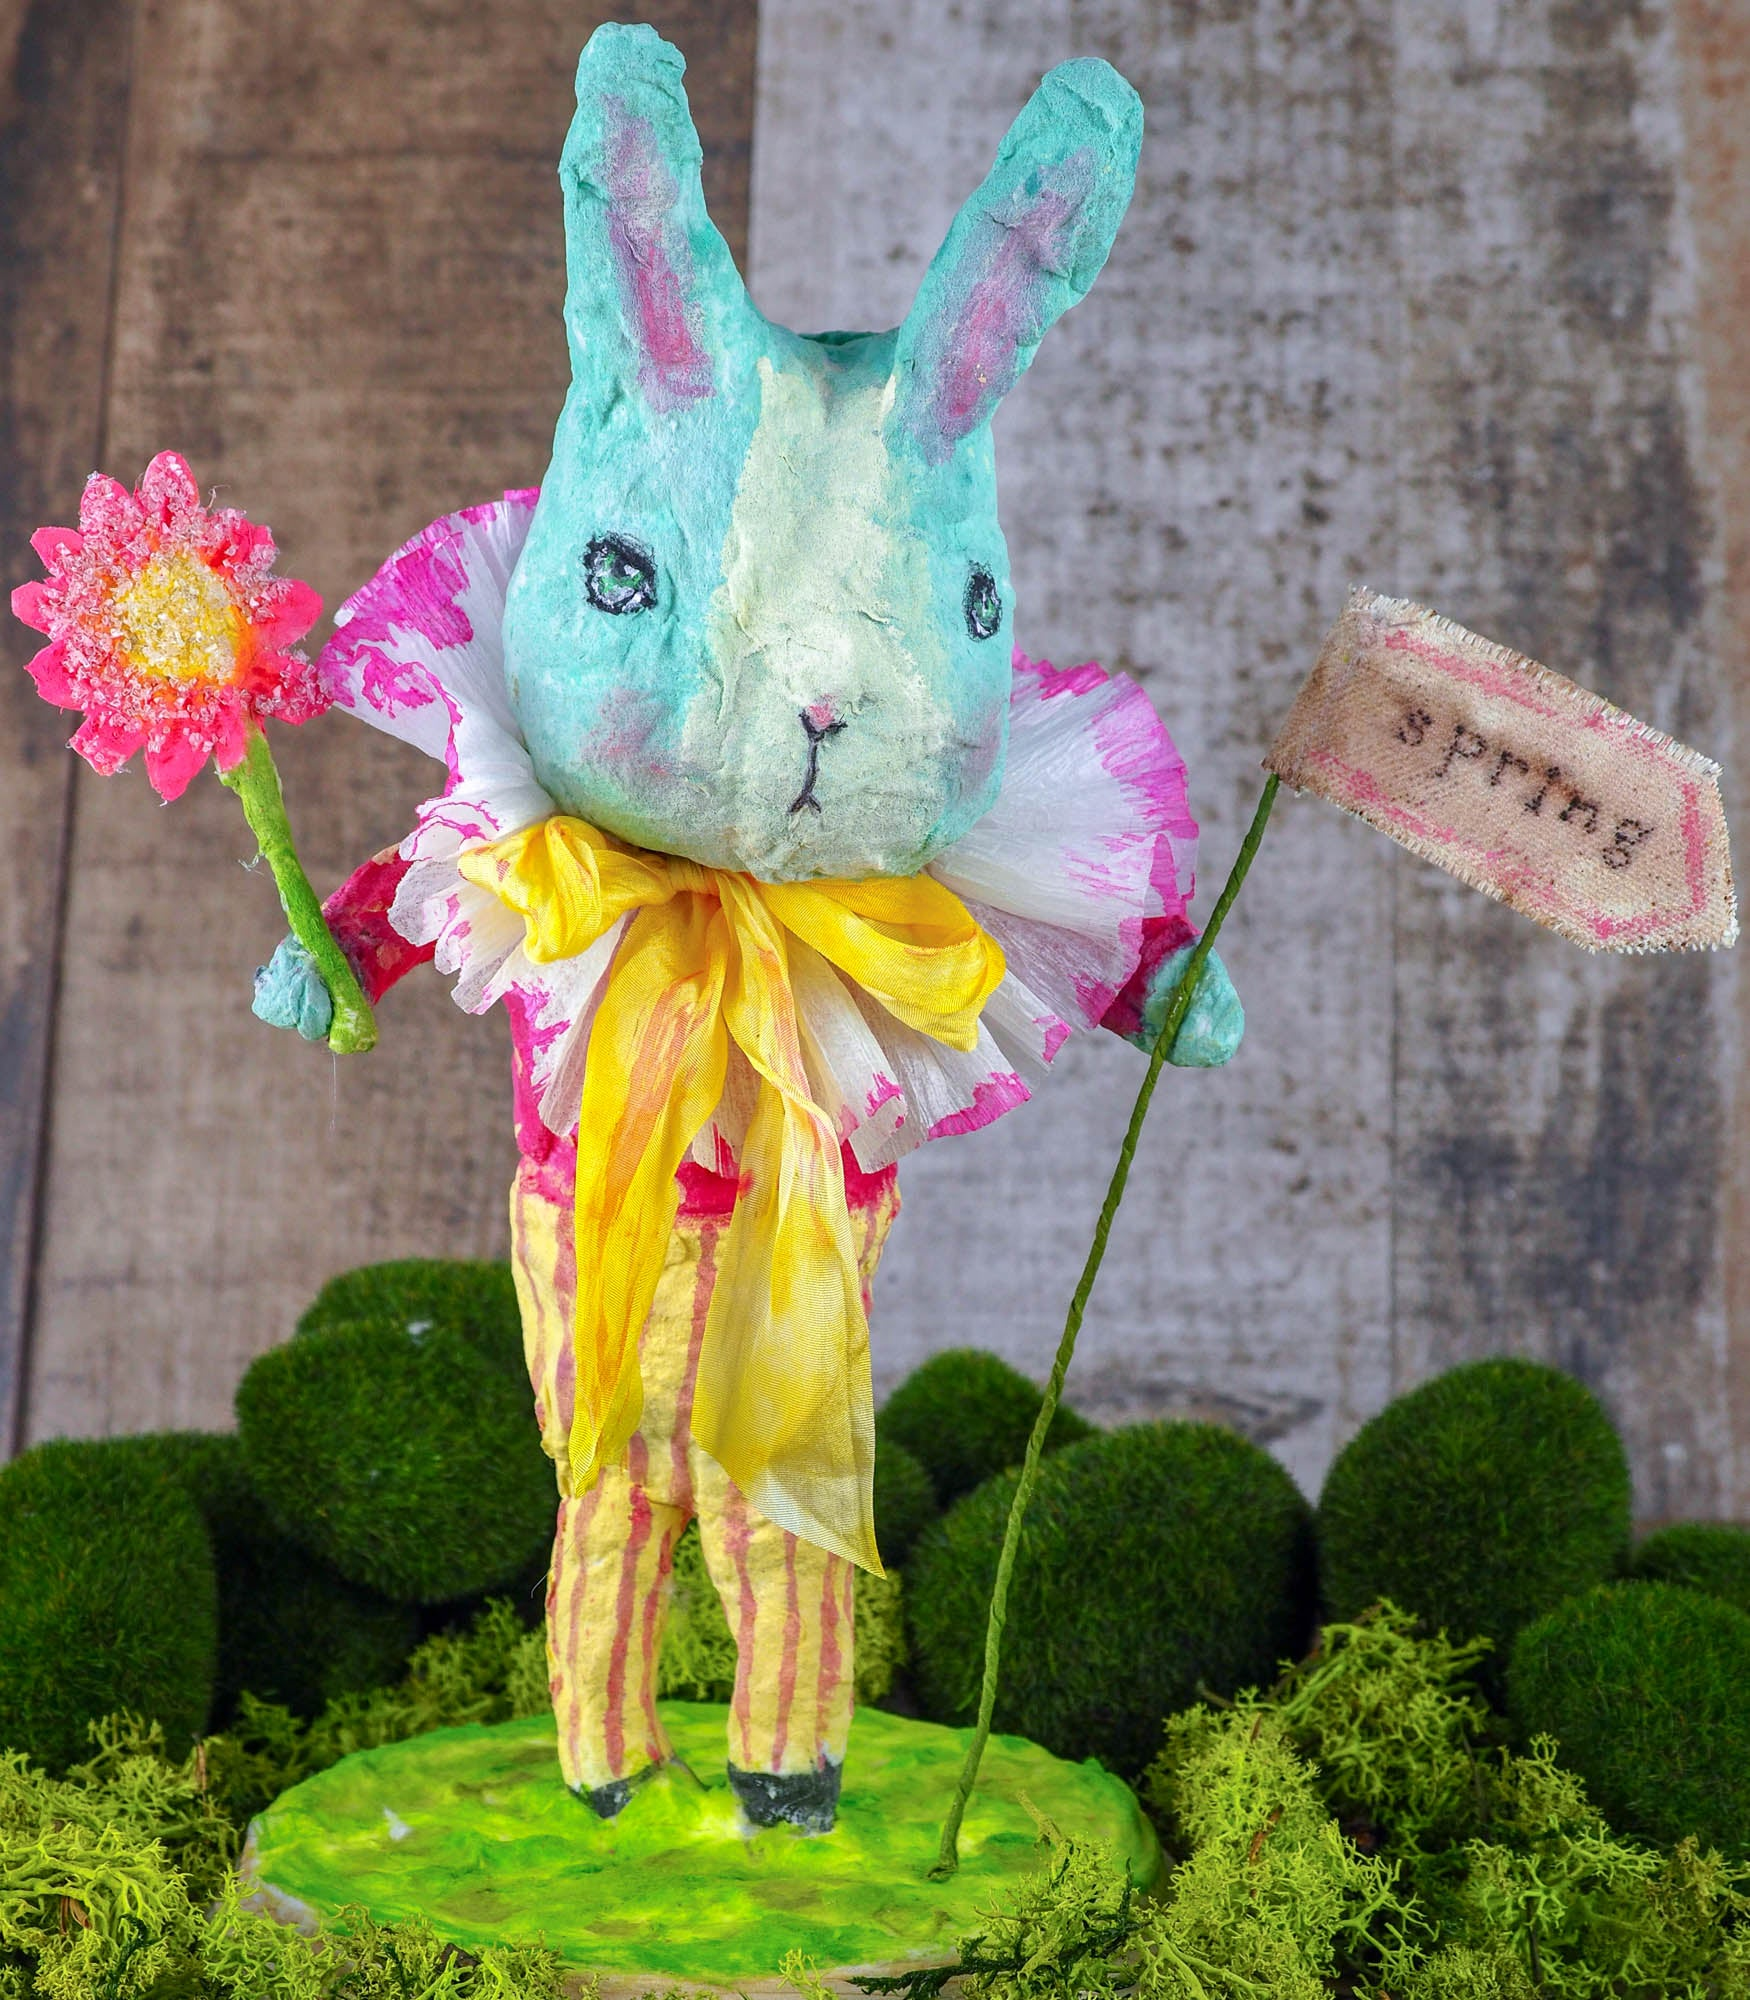 "Spring always inspires Danita to make beautiful handmade decorations for when the flowers start to bloom, just like this 10"" spun cotton handmade Easter bunny rabbit art doll by Danita, hand painted and dressed in a colorful yellow jumper suit."